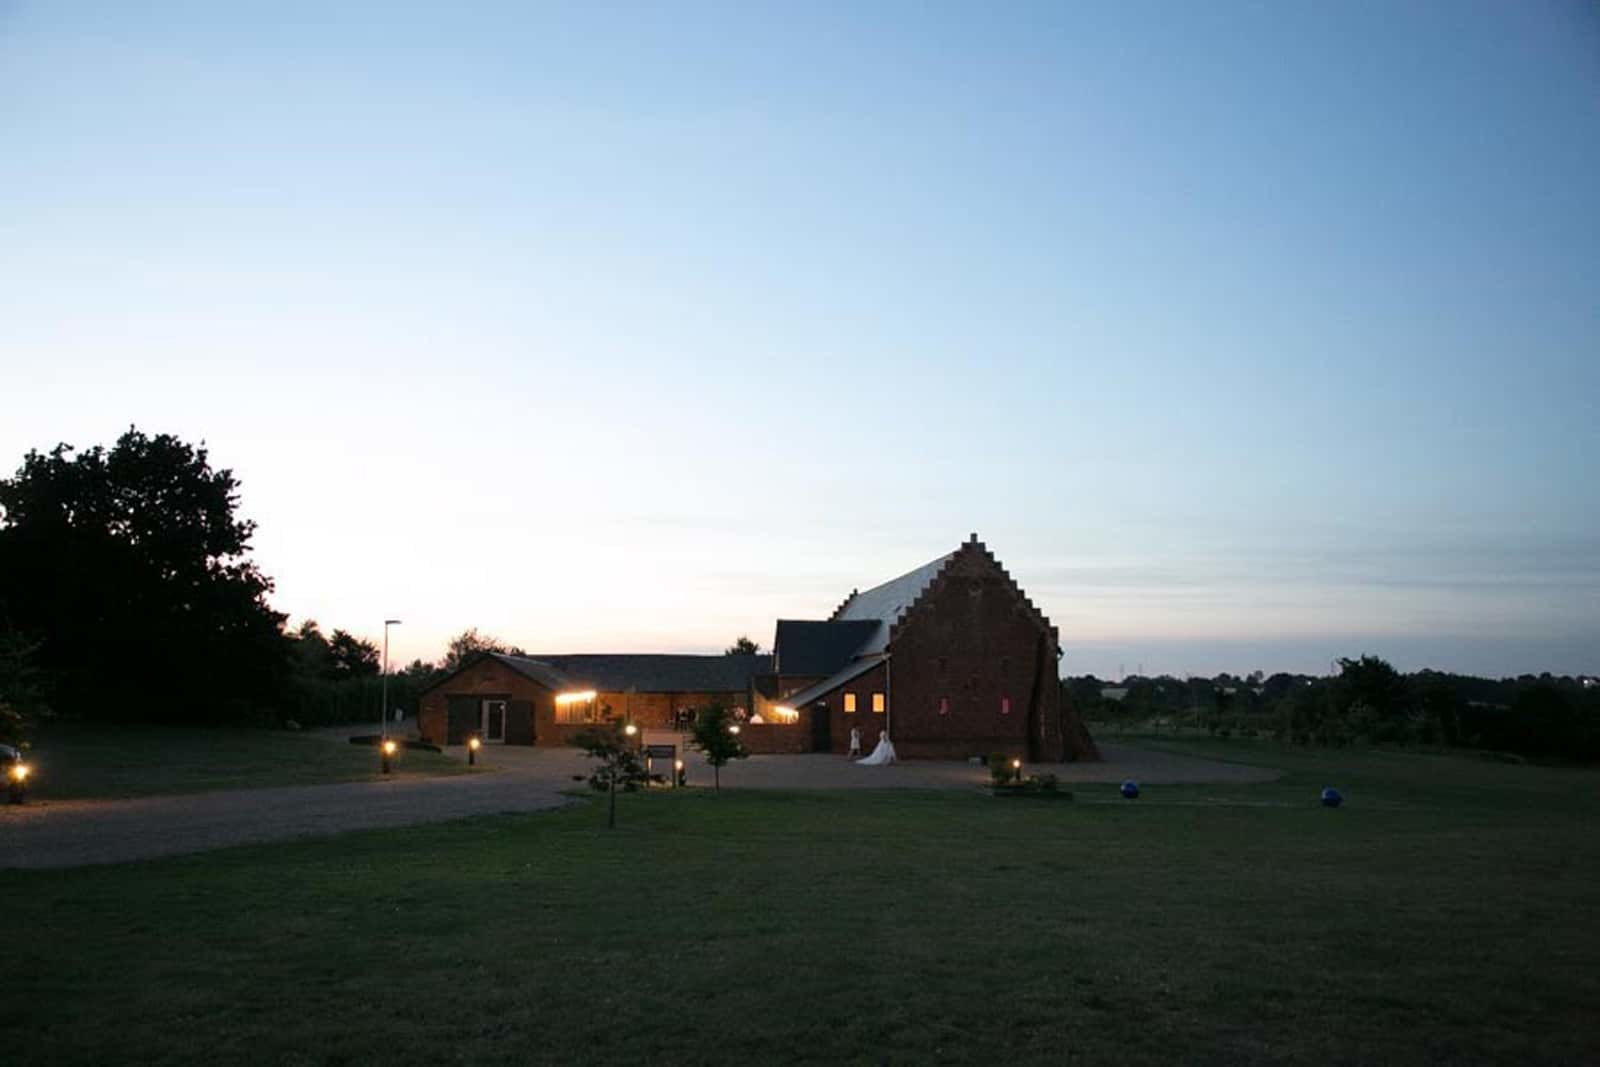 Copdock Hall barn nightime view - Rebecca Prigmore Photography